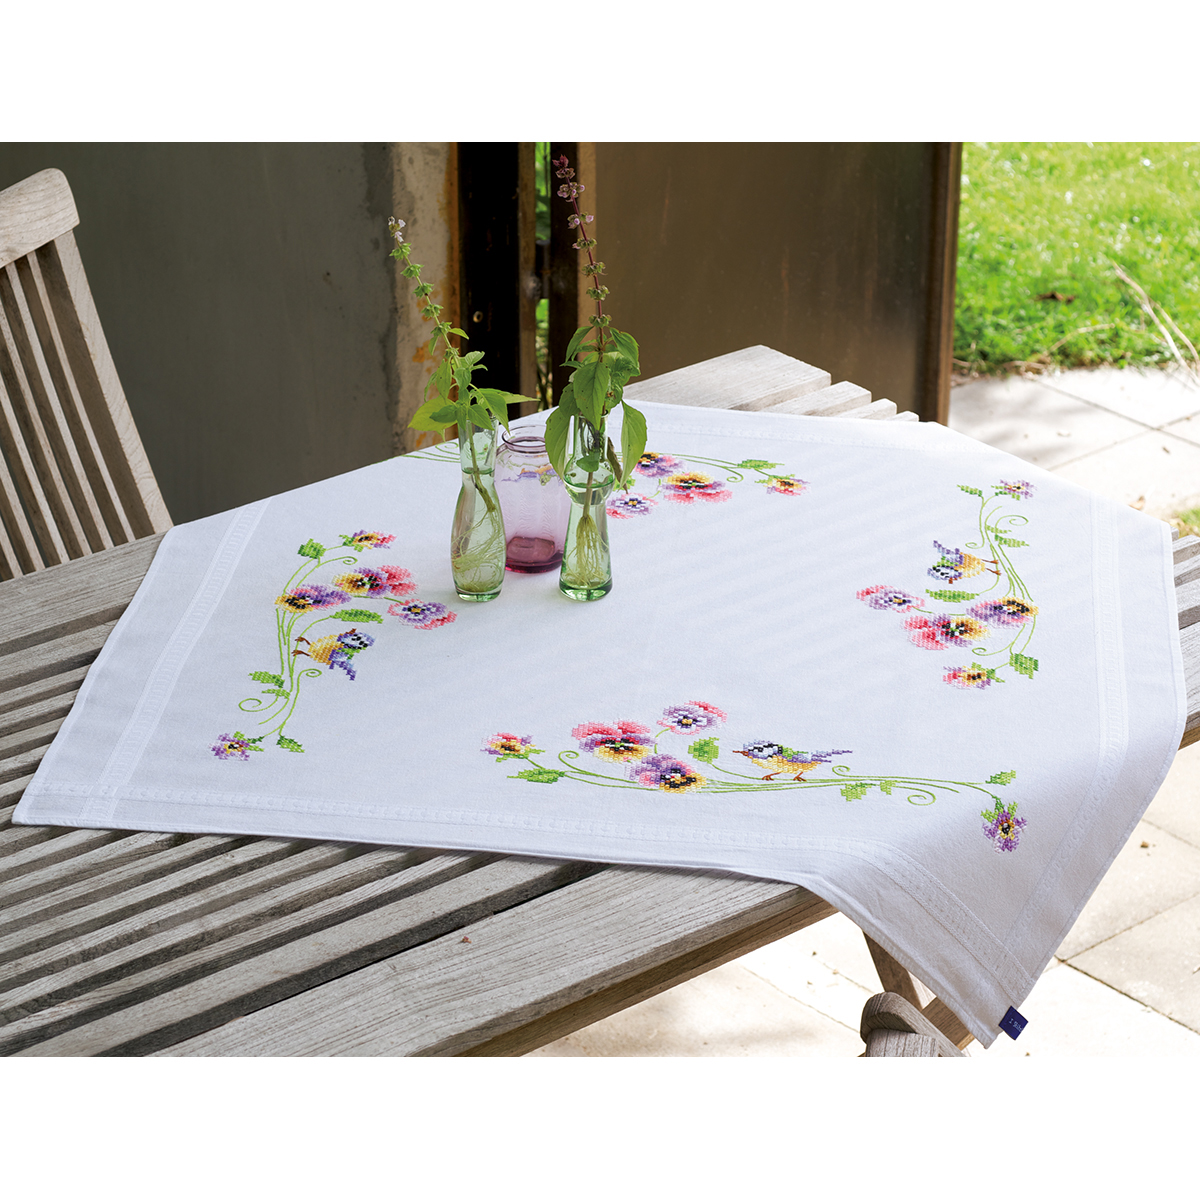 "Little Birds And Pansies Tablecloth Stamped Embroidery Kit-32""X32"""